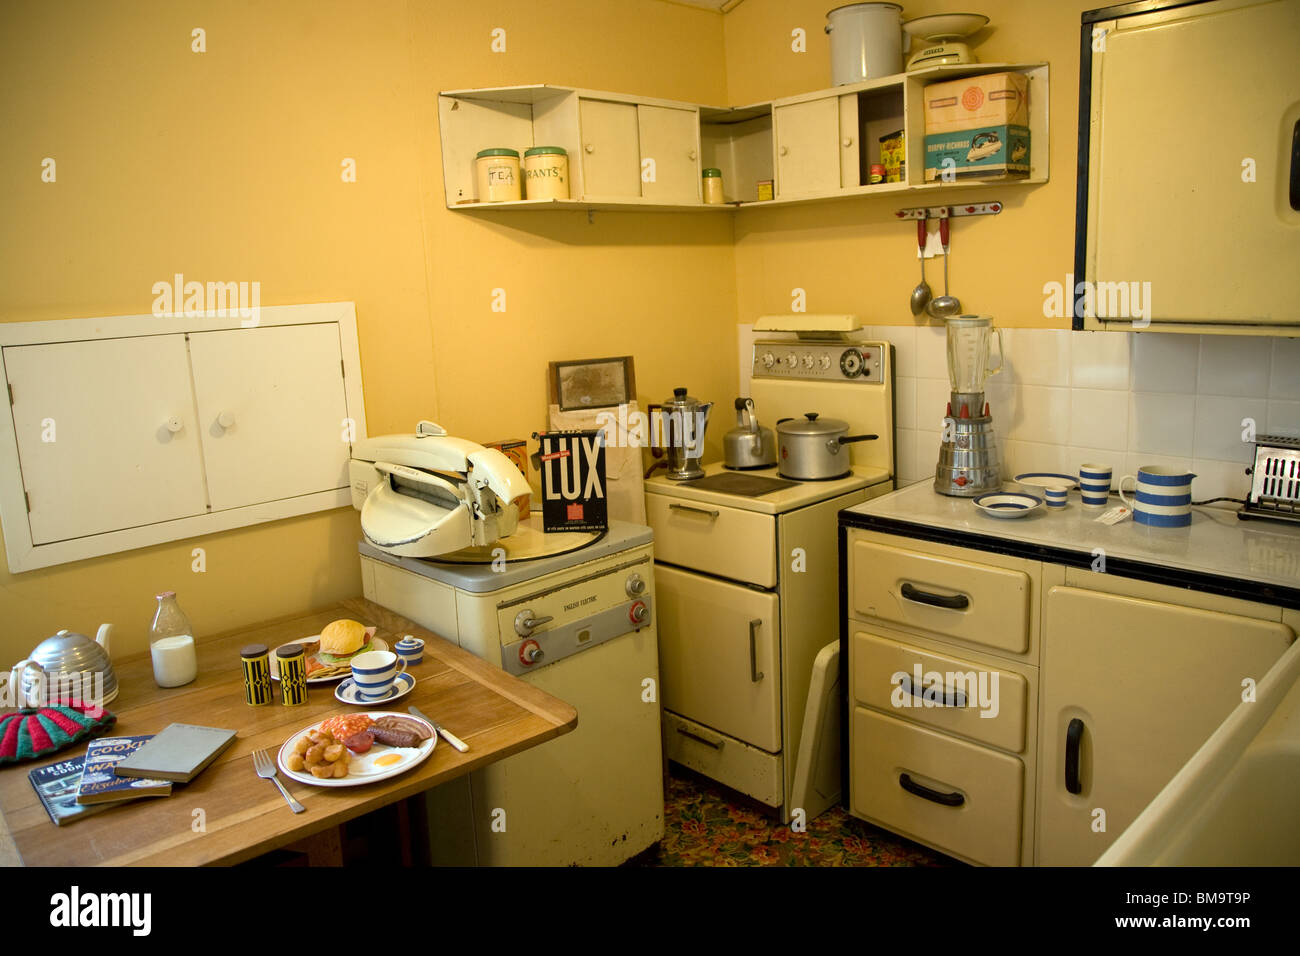 1950s kitchen museum of east anglian life stowmarket suffolk stock image